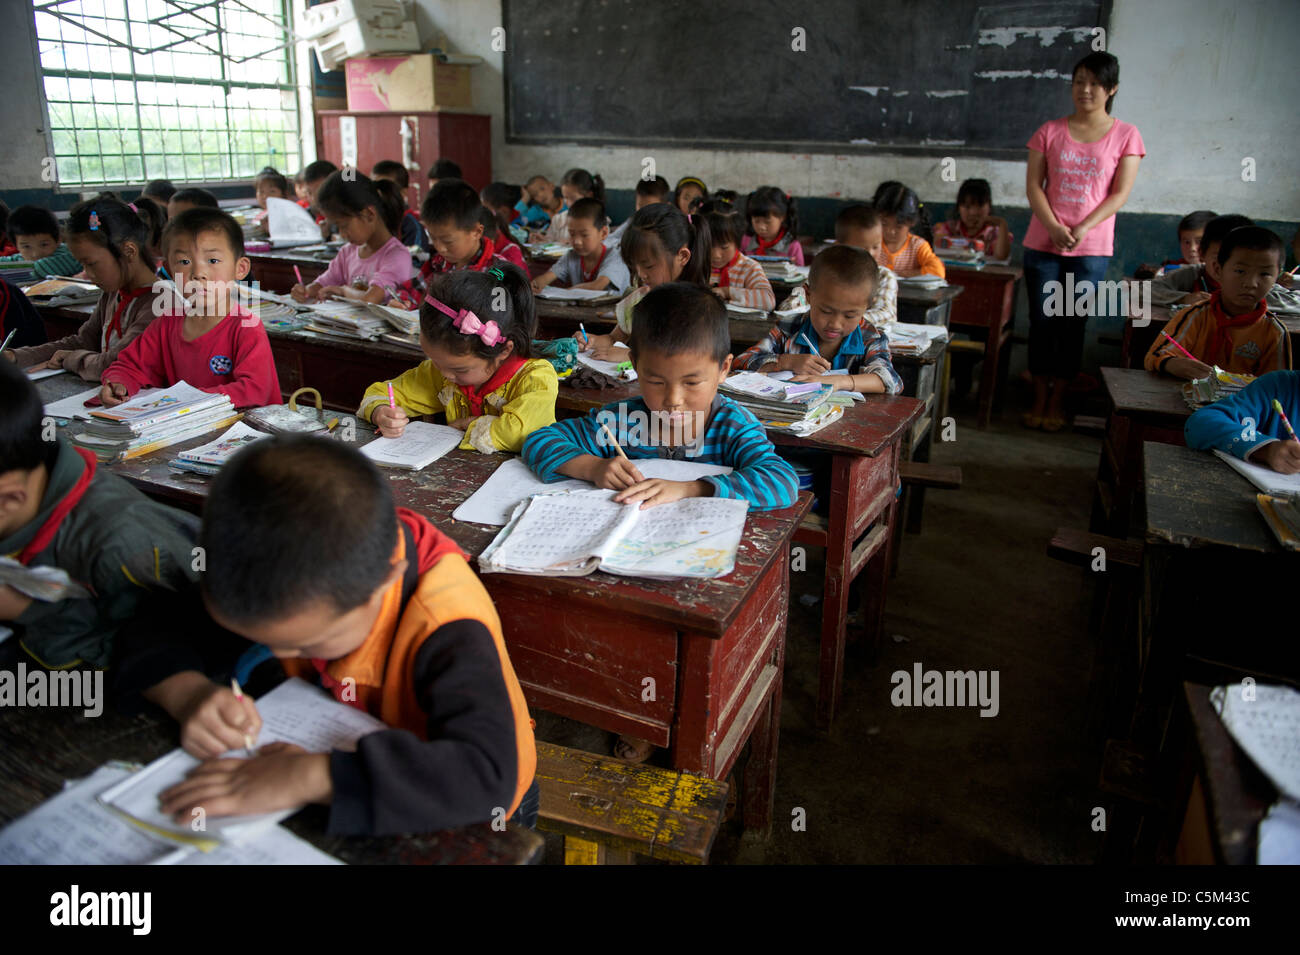 Chinese primary school students attending class at a poor village in Shangluo, Shaanxi province, China. 21-May-2011 - Stock Image